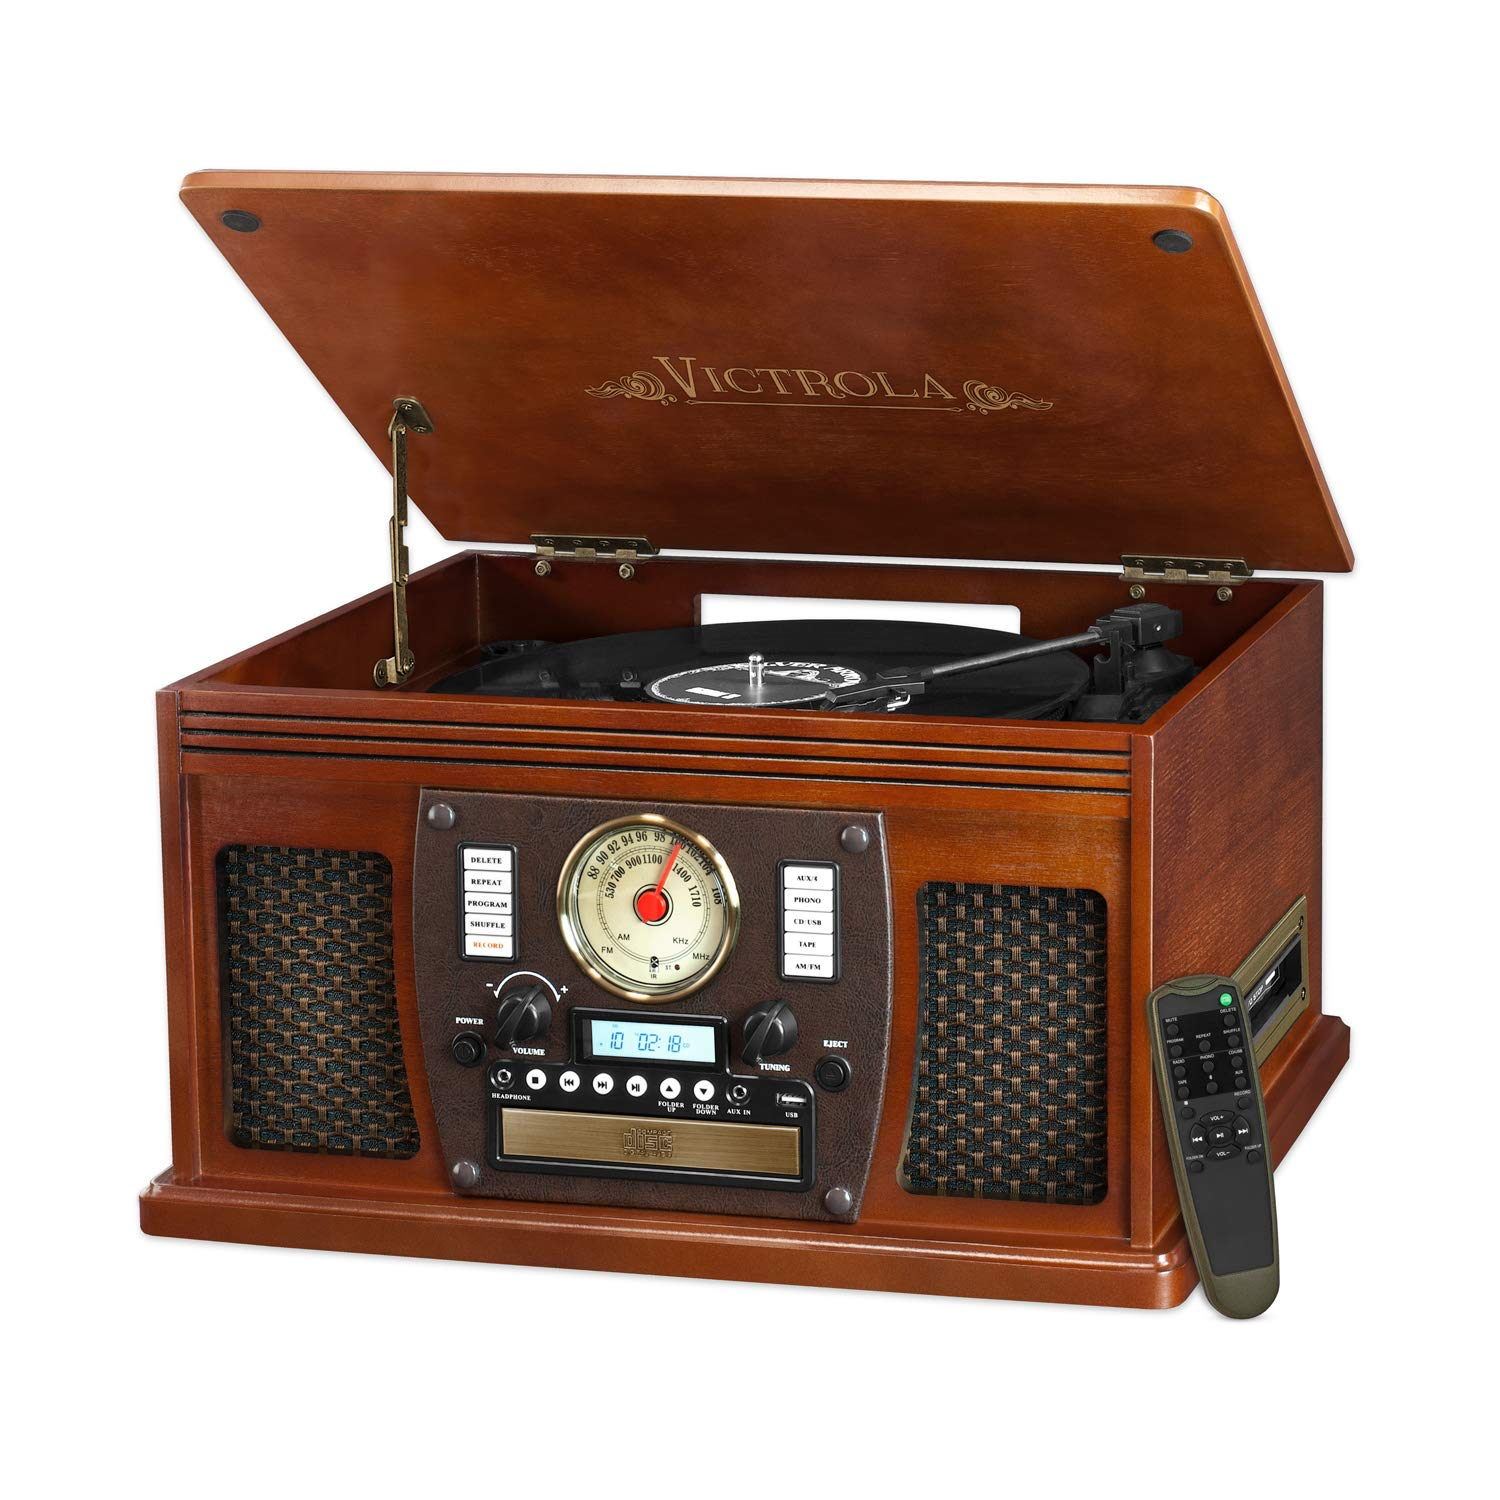 Victrola Navigator 8-in-1 Classic Bluetooth Record Player with USB Encoding and 3-speed Turntable by Victrola